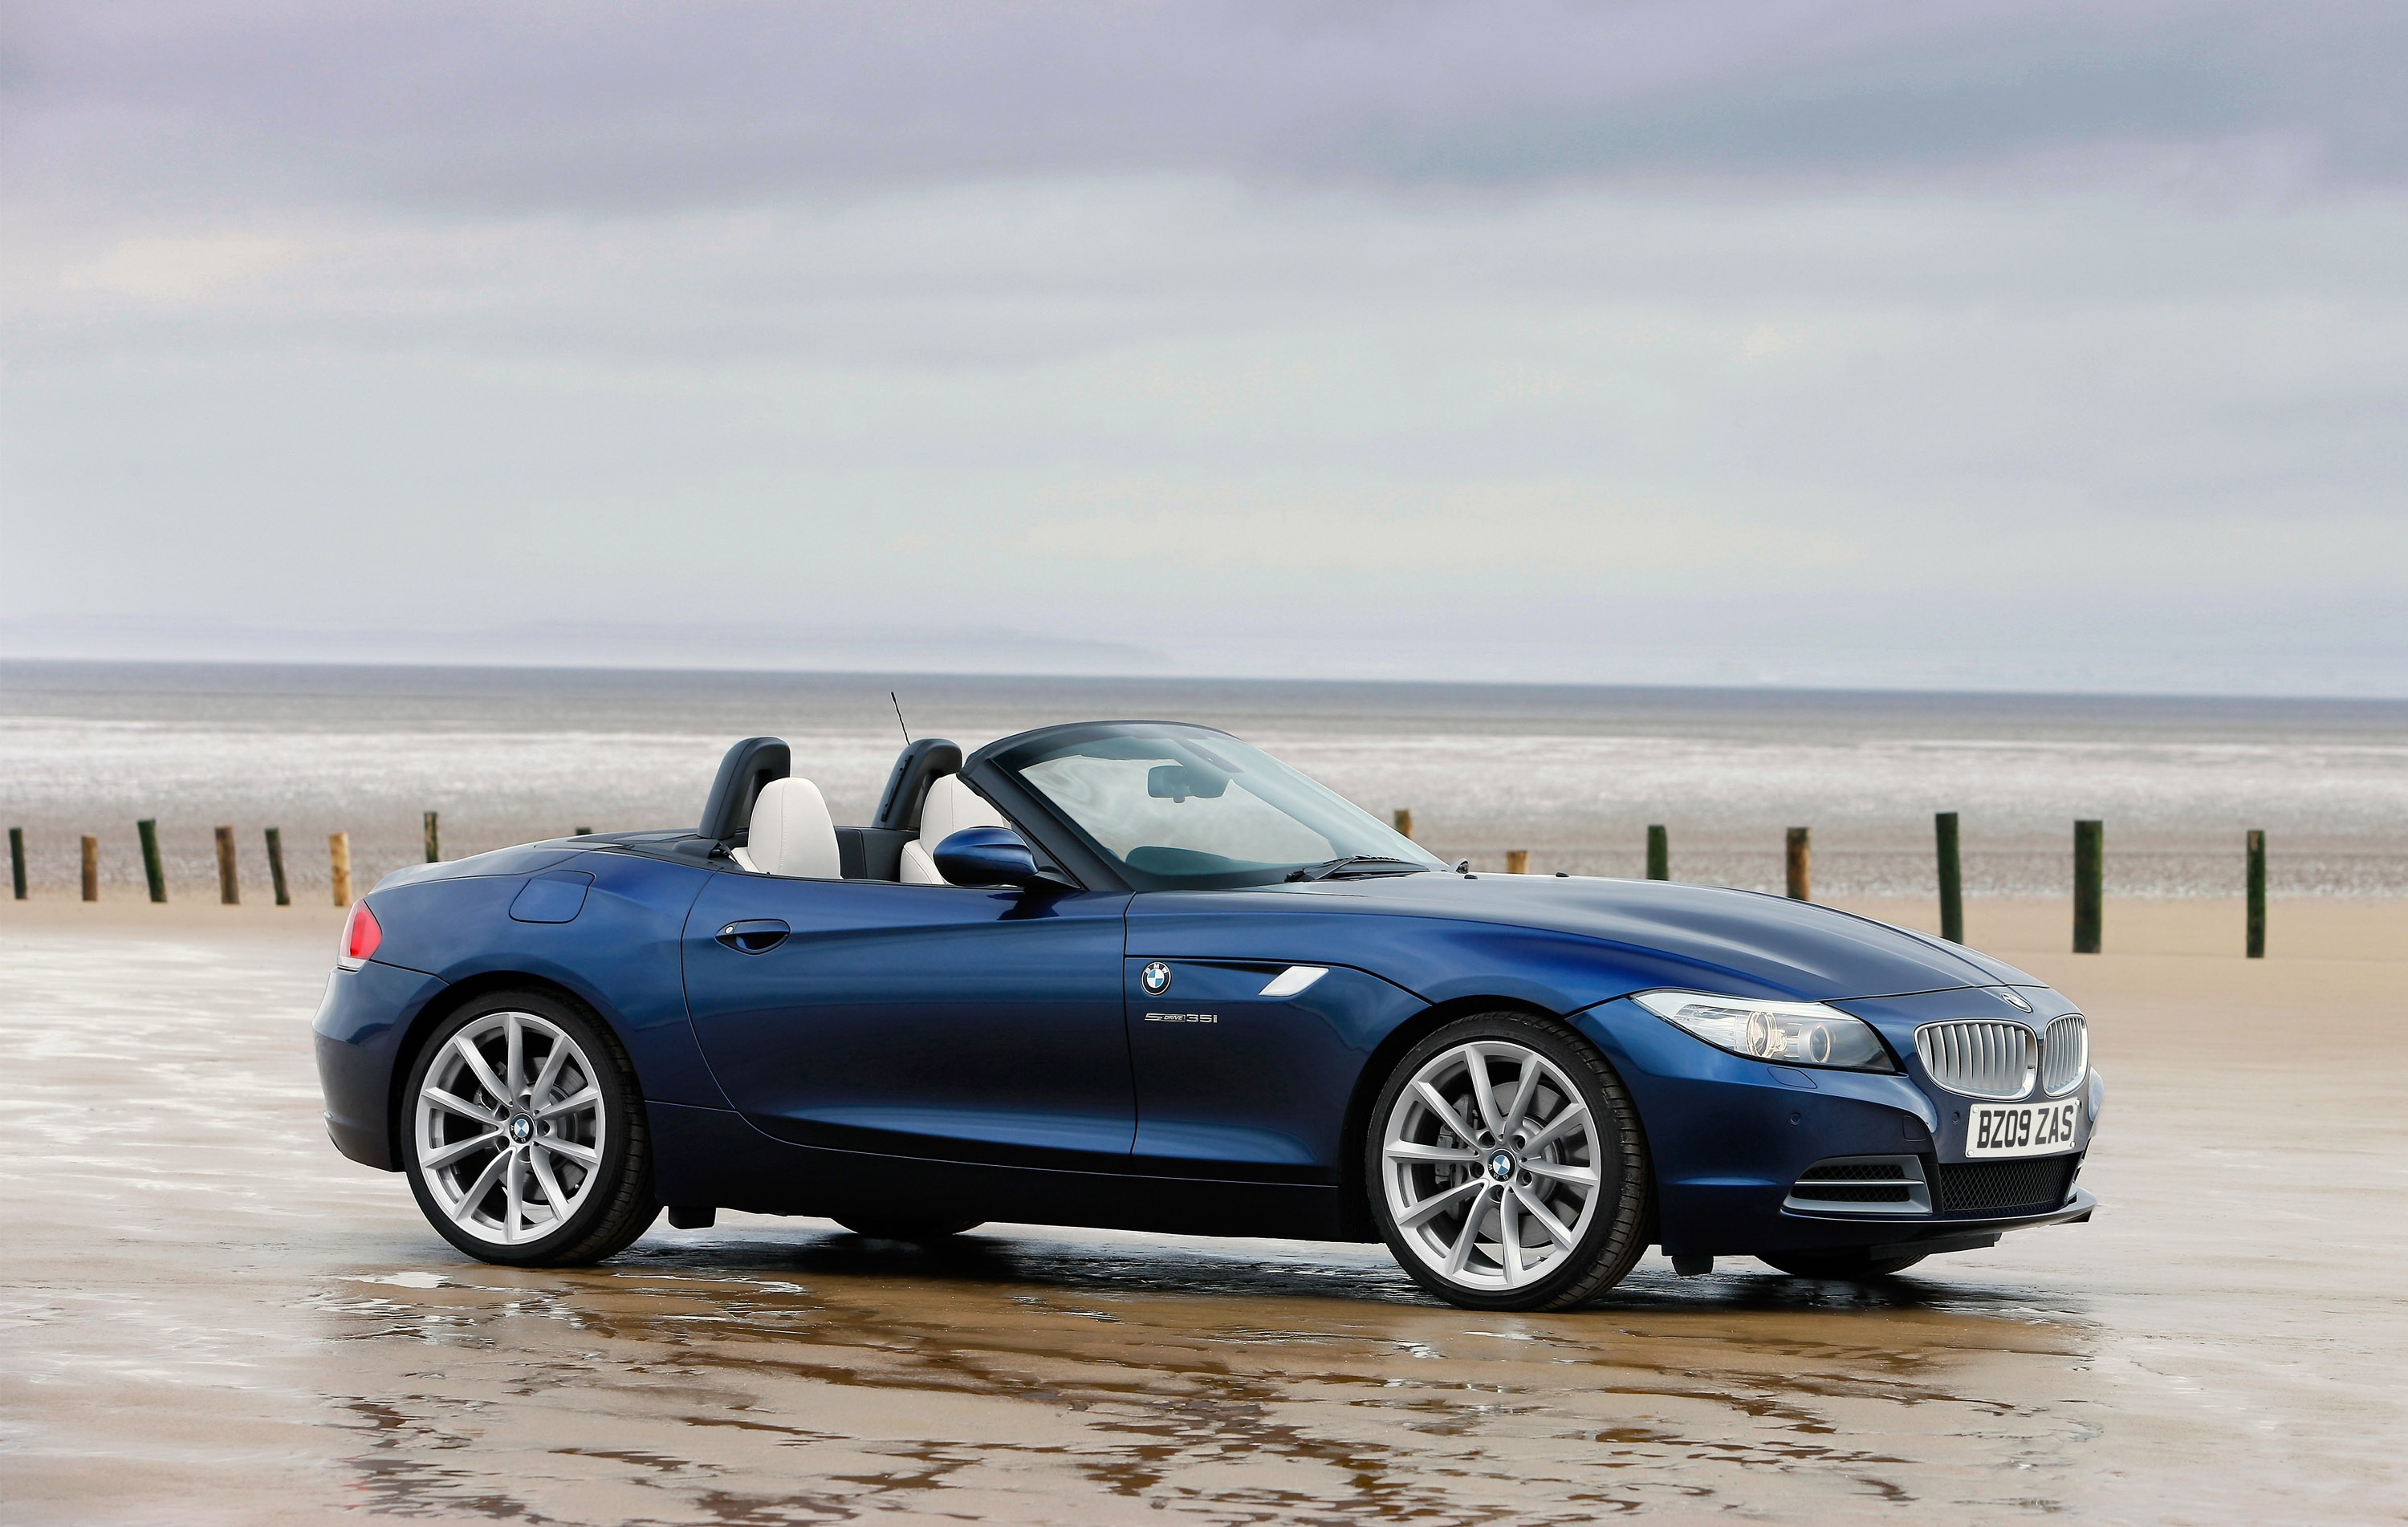 2009 Bmw Z4 Information And Photos Zombiedrive